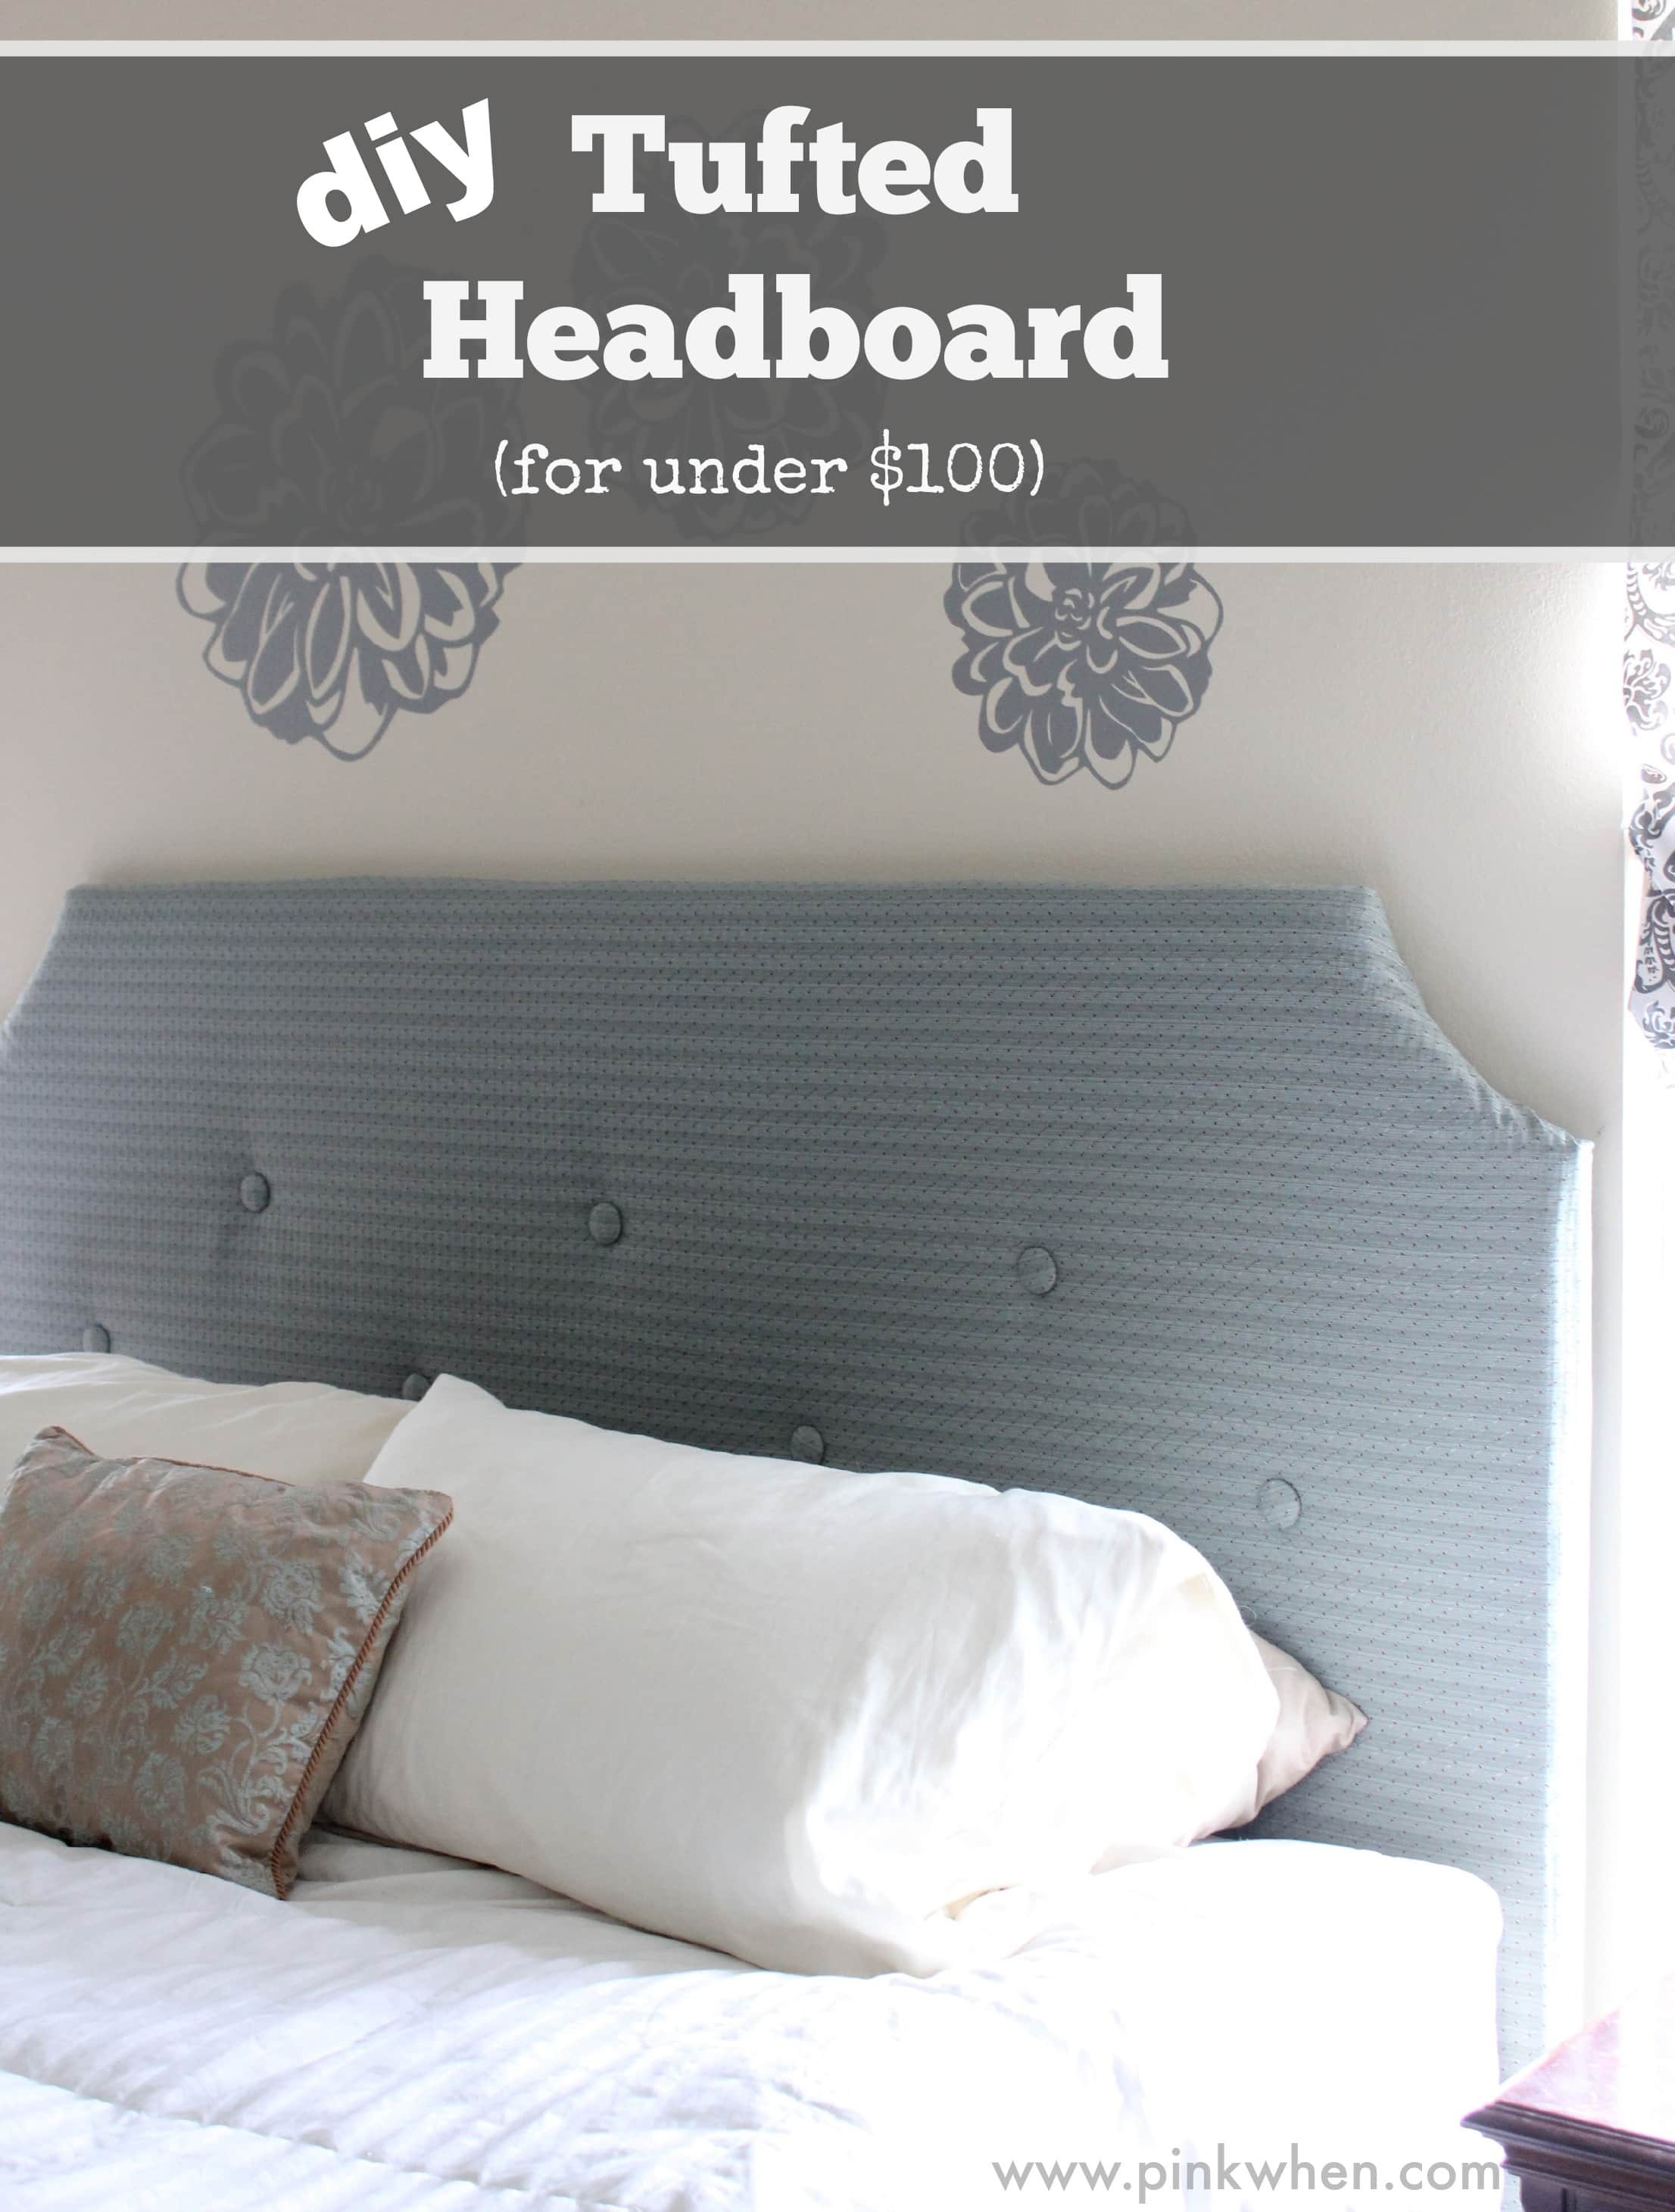 DIY Tufted Headboard for under $100 via PinkWhen.com